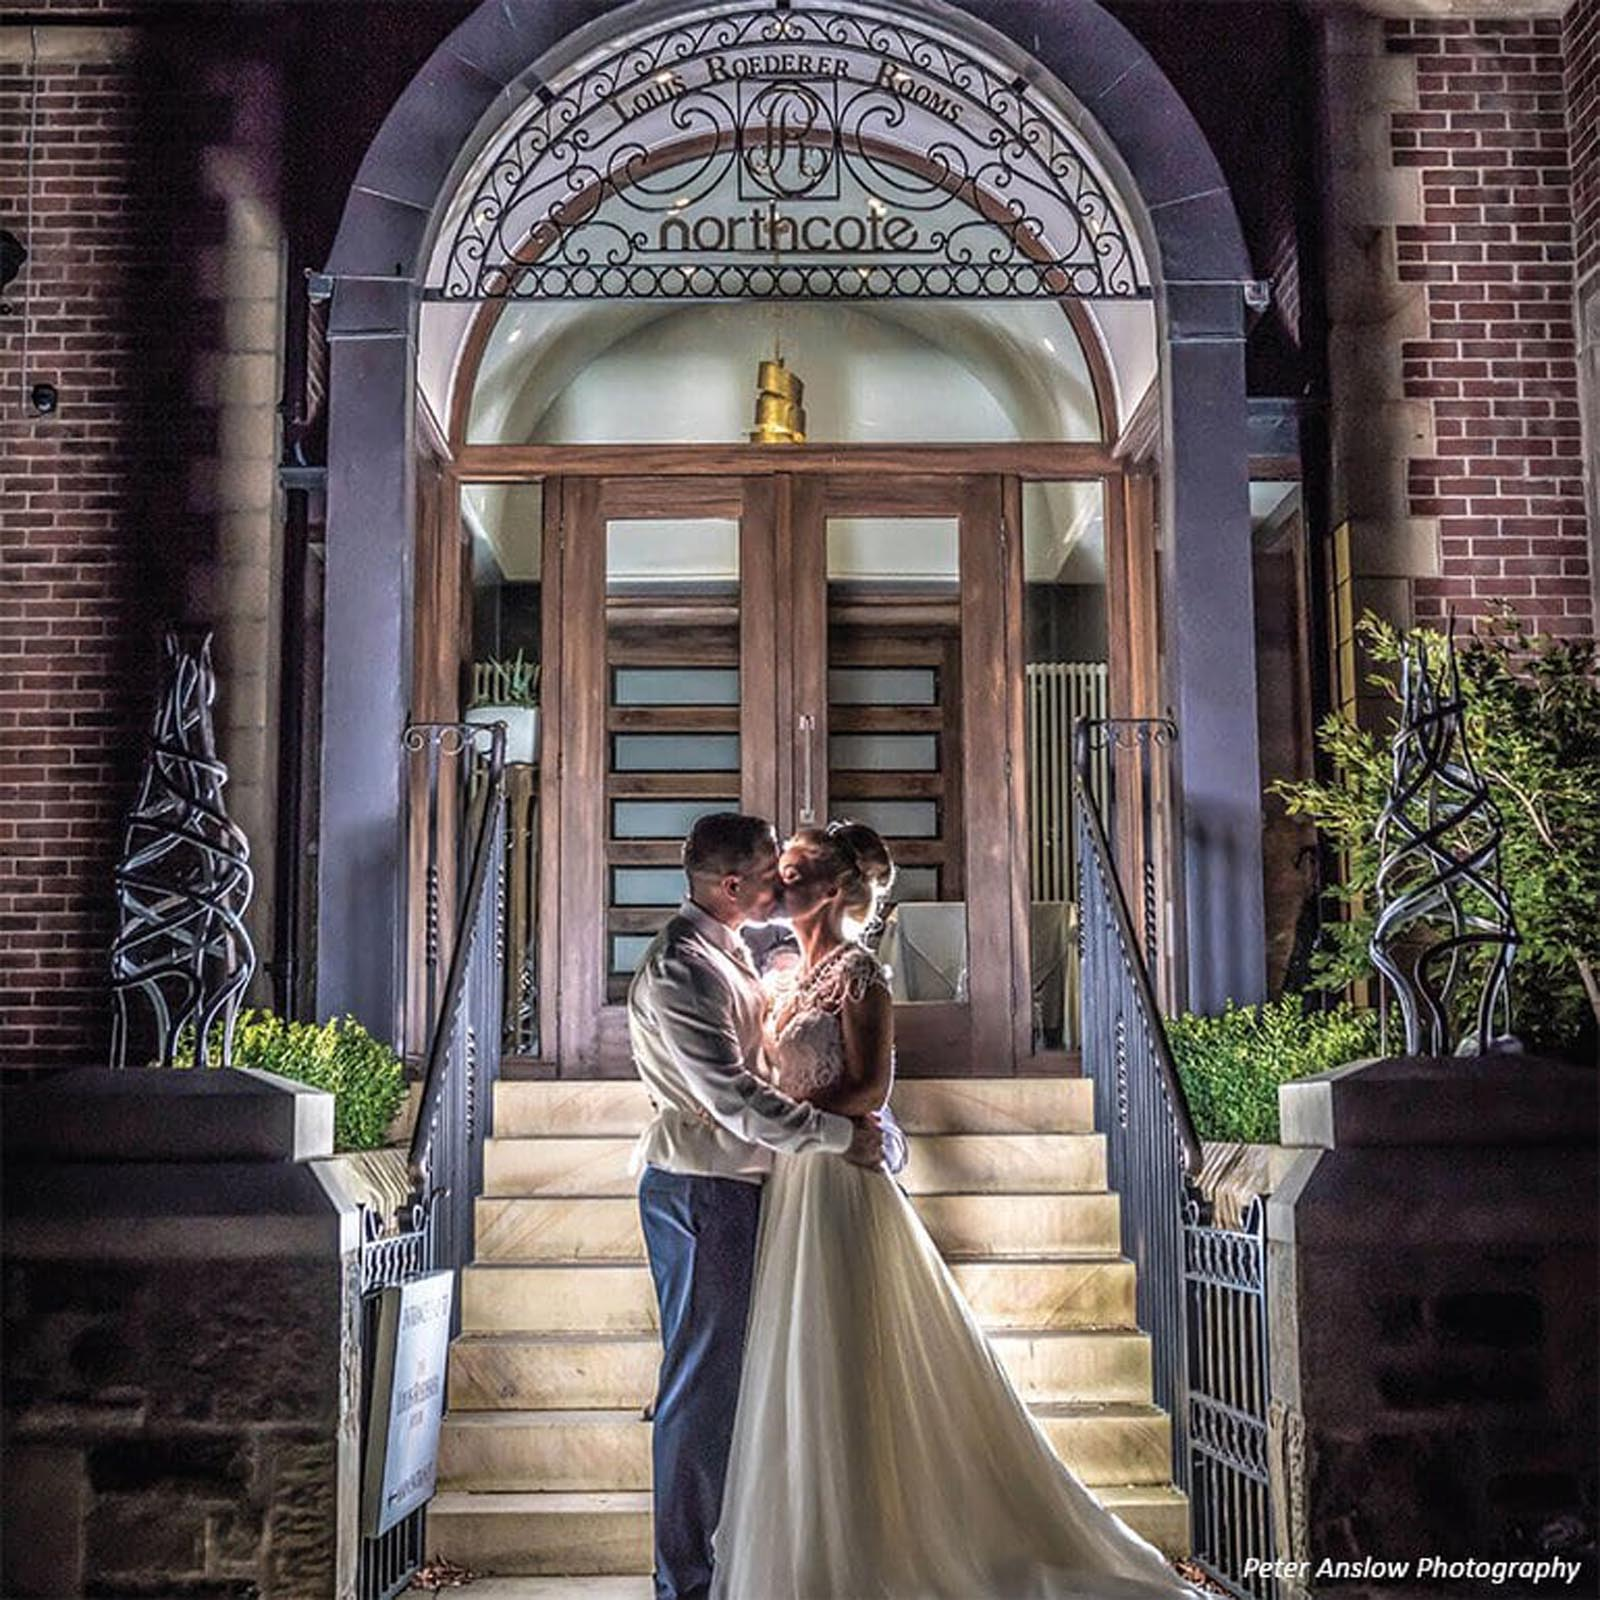 Bride and groom in front of Northcote